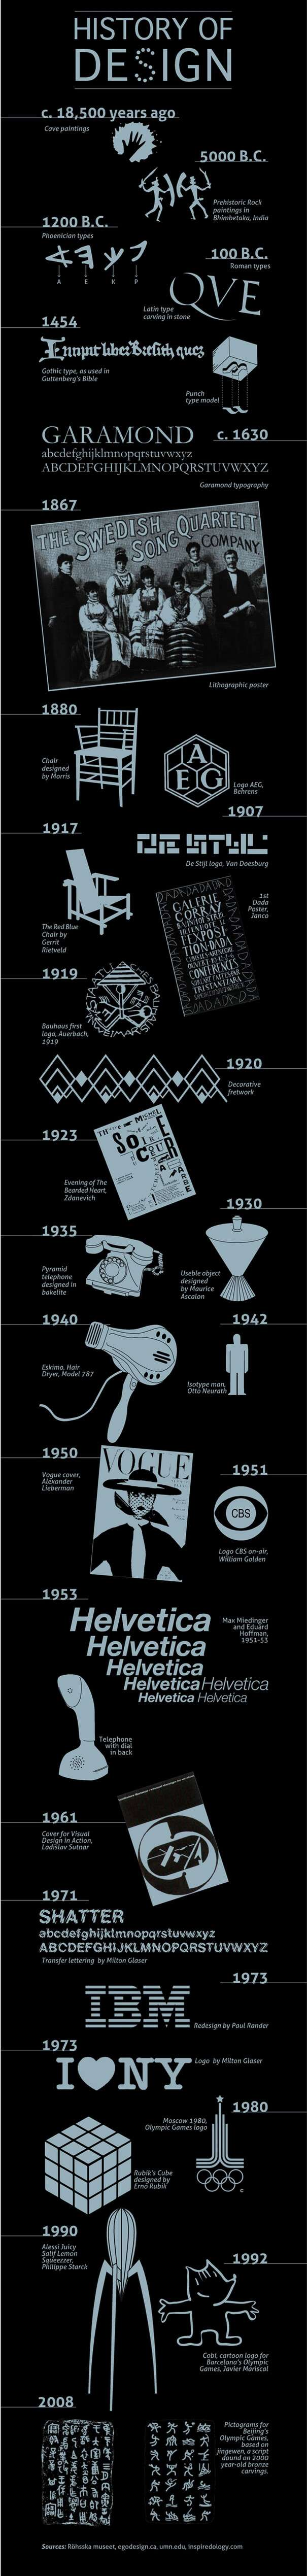 A History Of Graphic Design INFOGRAPHIC